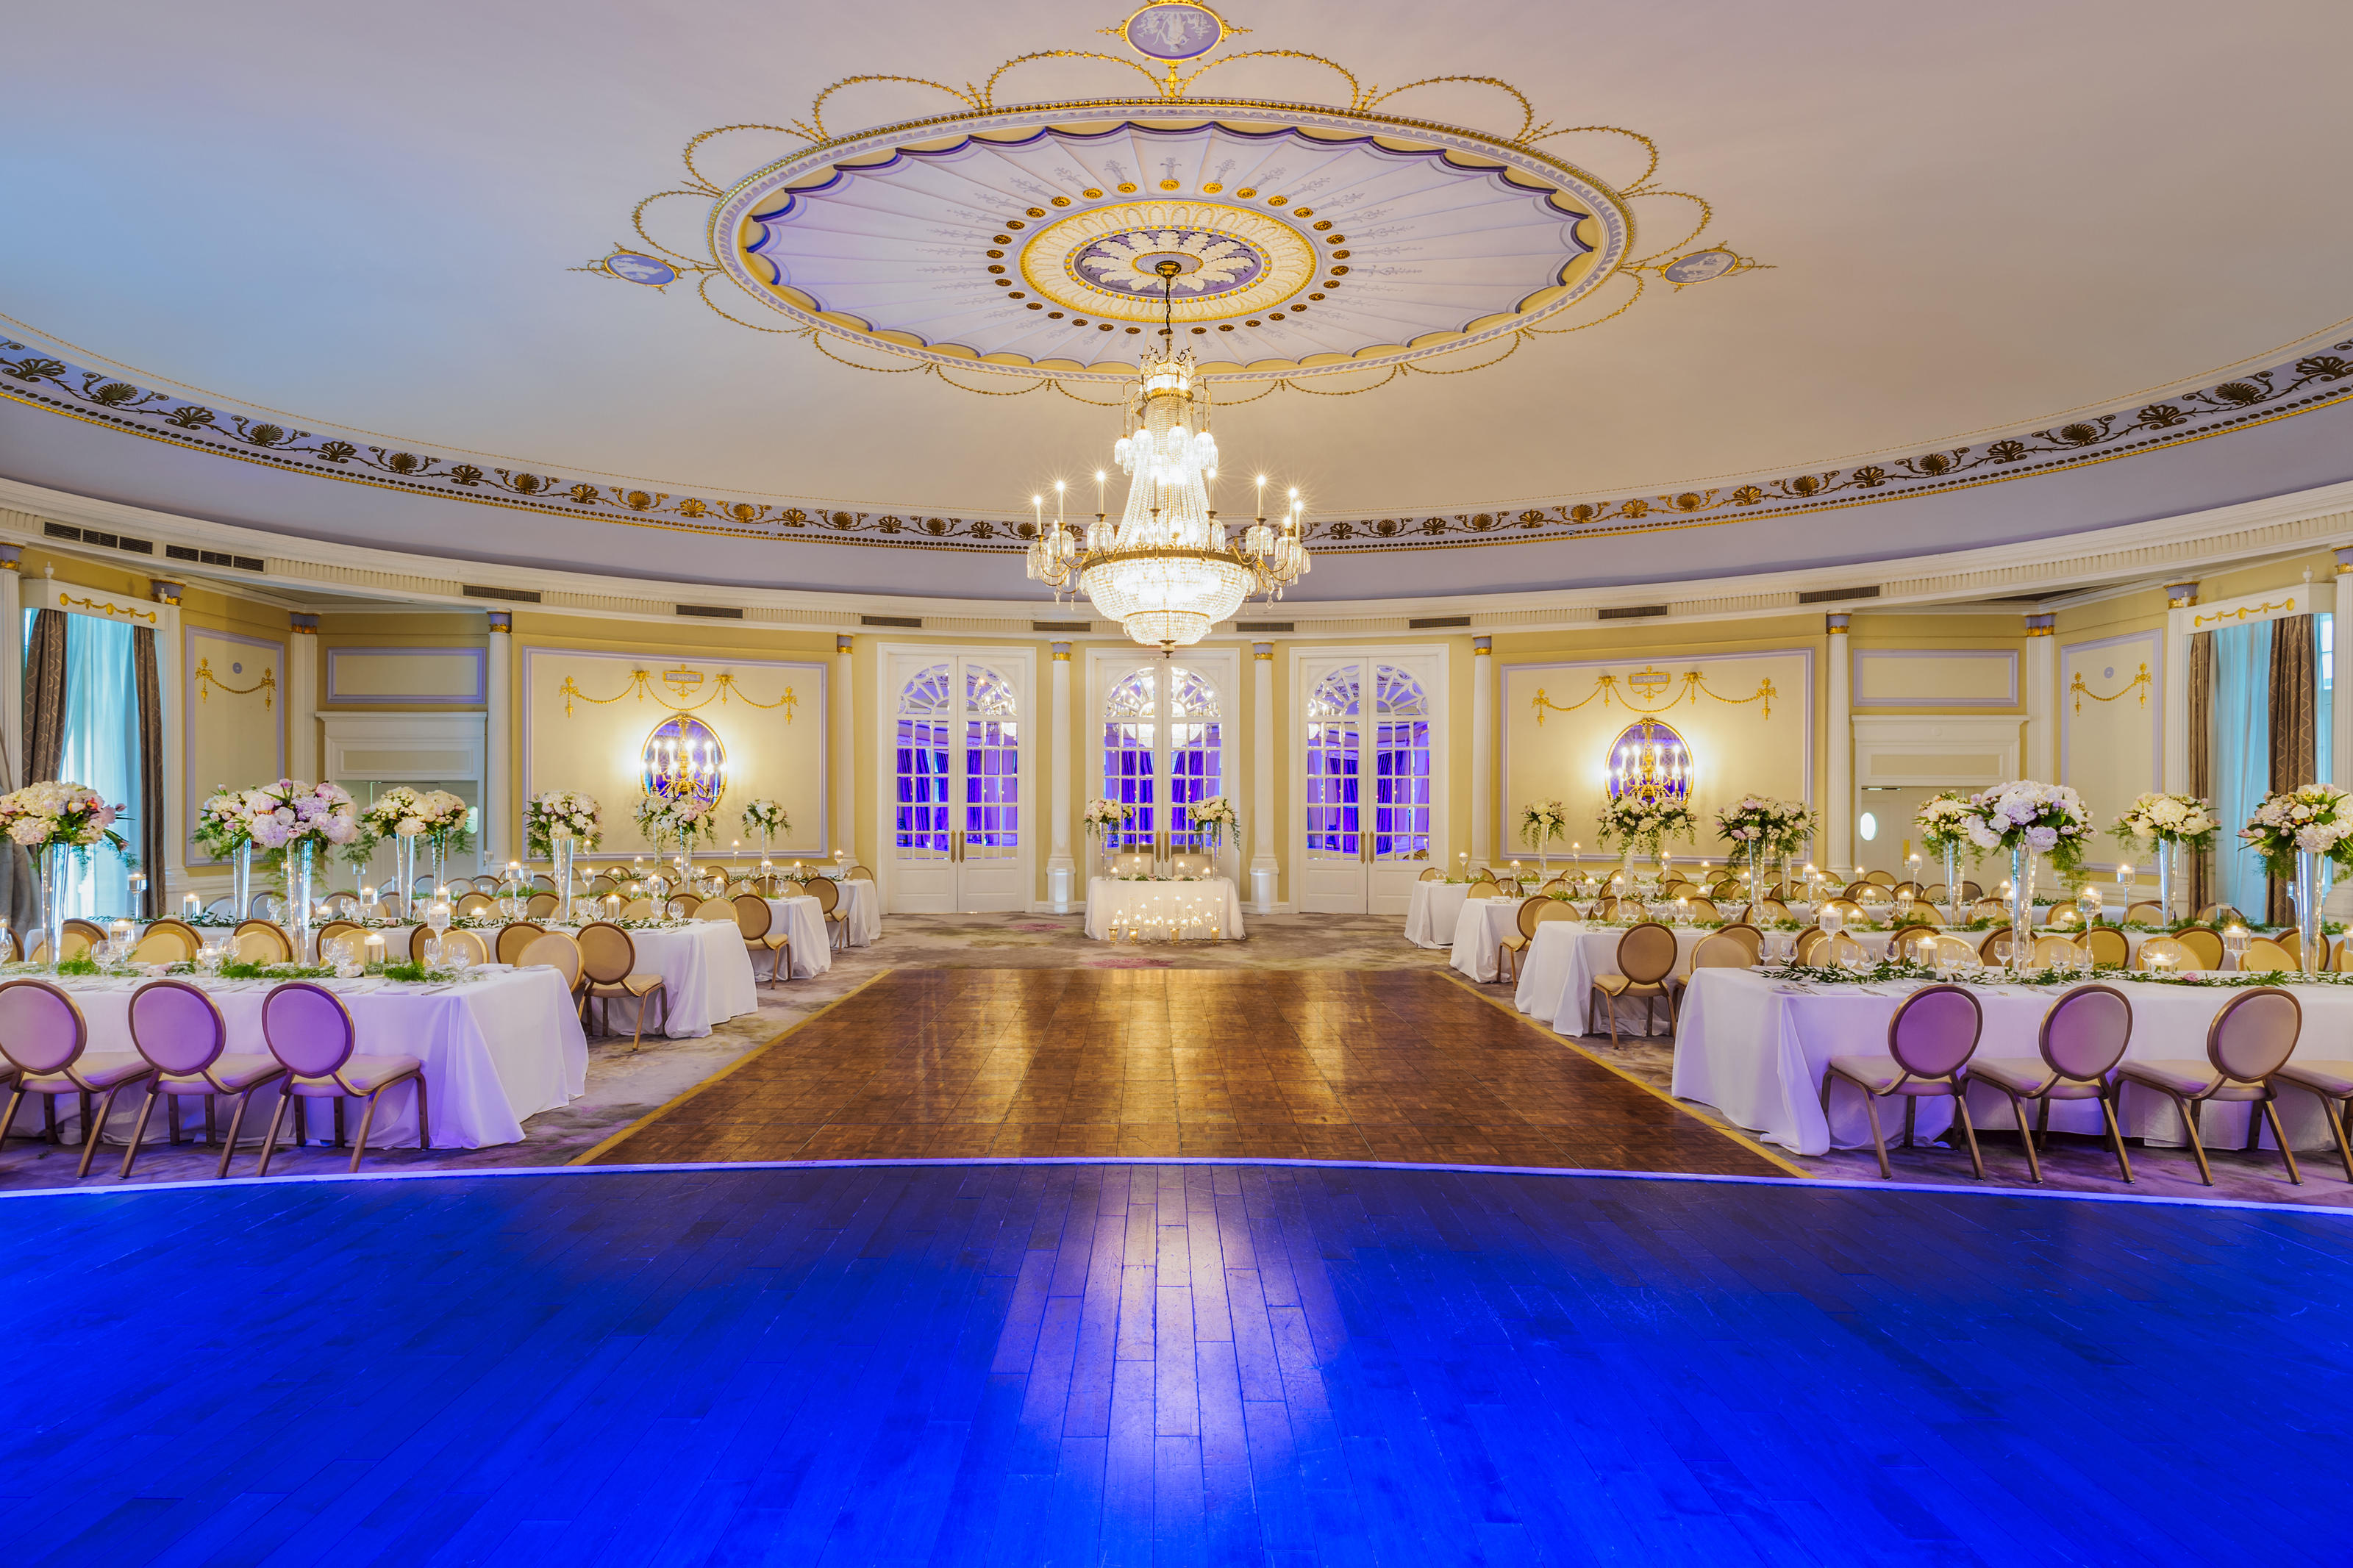 The Ritz-Carlton, Montreal à Montreal: With spaces that exude both historic charm and sophisticated luxury, The Ritz-Carlton, Montreal offers the ultimate venue for your wedding. Plan an intimate gathering on the Oval Room Terrace, where gardens bloom with romance. Or host a lavish affair within the Gold and Grey Room, which can welcome more than 200 guests. Each of the hotel's seven luxury wedding venues inspires unforgettable events.  In addition to its indoor and outdoor wedding spaces, this Montreal hotel offers the assistance of a dedicated wedding planner to guide you in selecting details like invitations, flowers, menus, music and décor.  The hotel also provides exquisite catering for every event. Its exceptional culinary team includes Pastry Chef Claude Guérin, who was recently awarded the title of Best Pastry Chef in Canada. Additionally, its kitchens are the only ones in Montreal that offer Glatt Kosher catering.